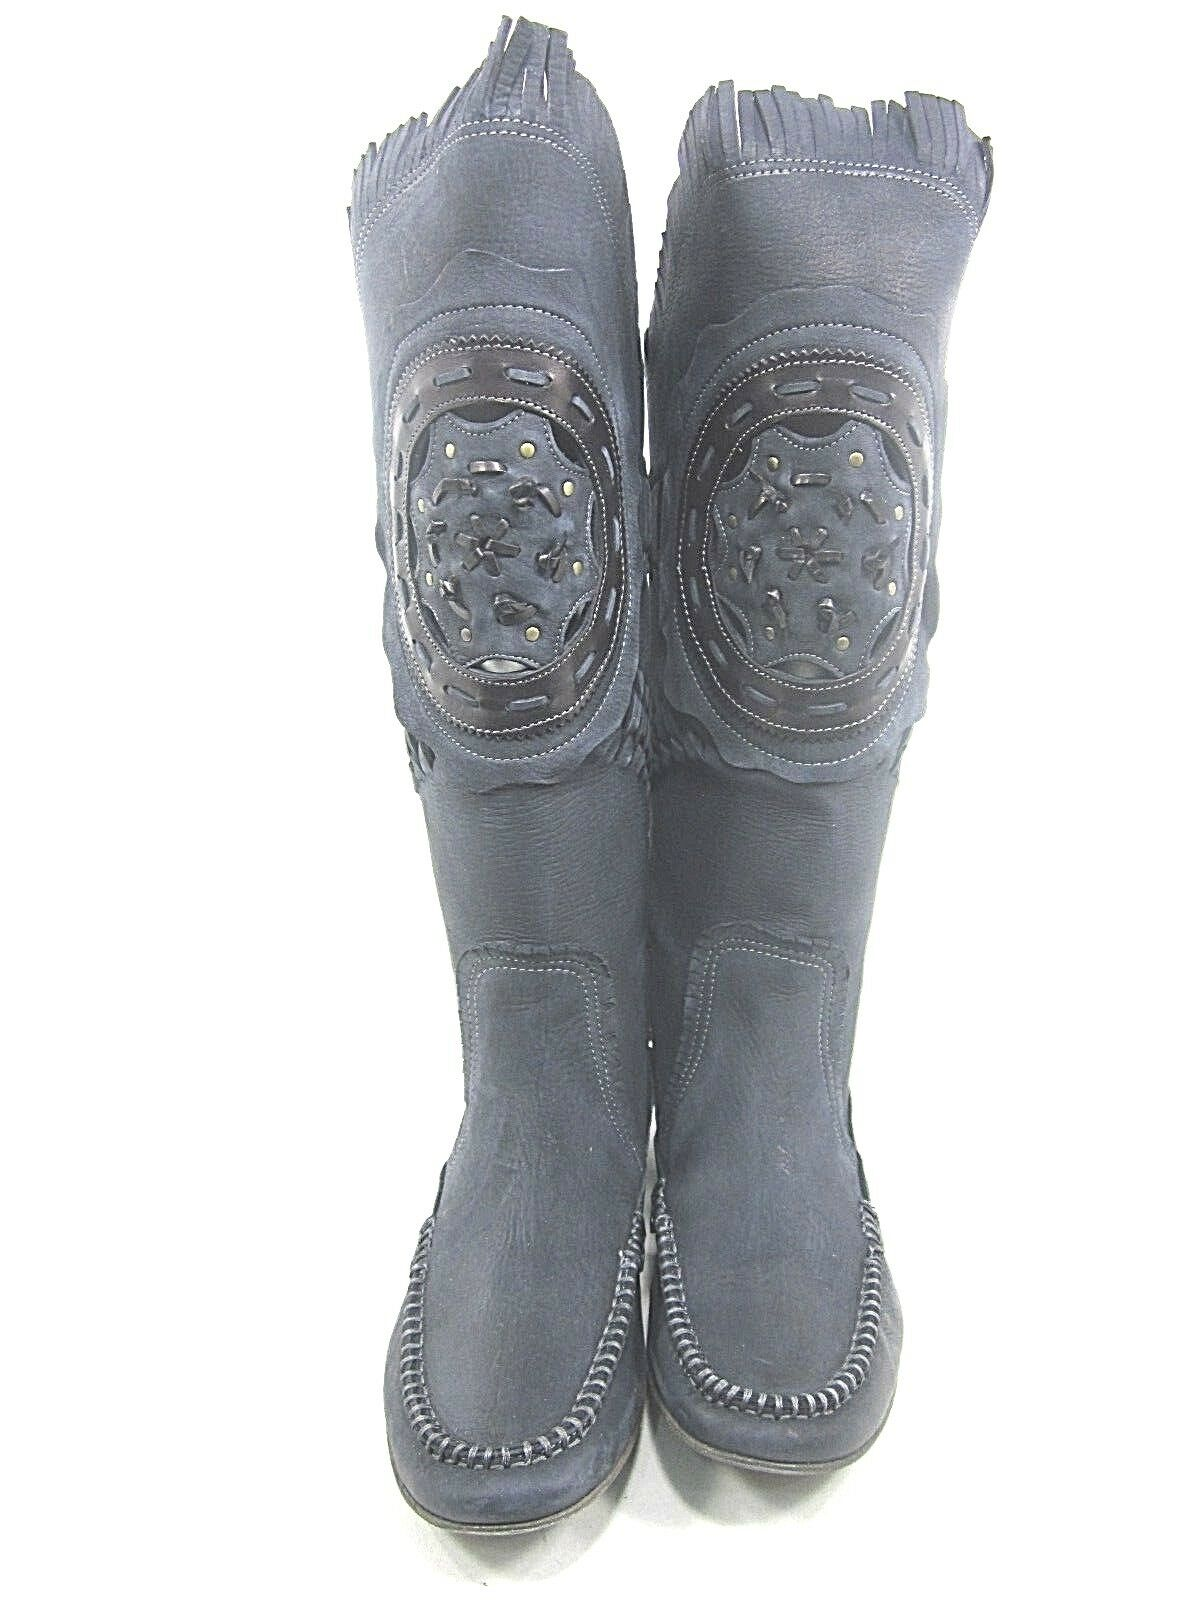 AREA AREA AREA FORTE, AD1297 BOOT, WOMEN'S, black, EURO 39 M, LEATHER, NEW  DISPLAY 02b8c7